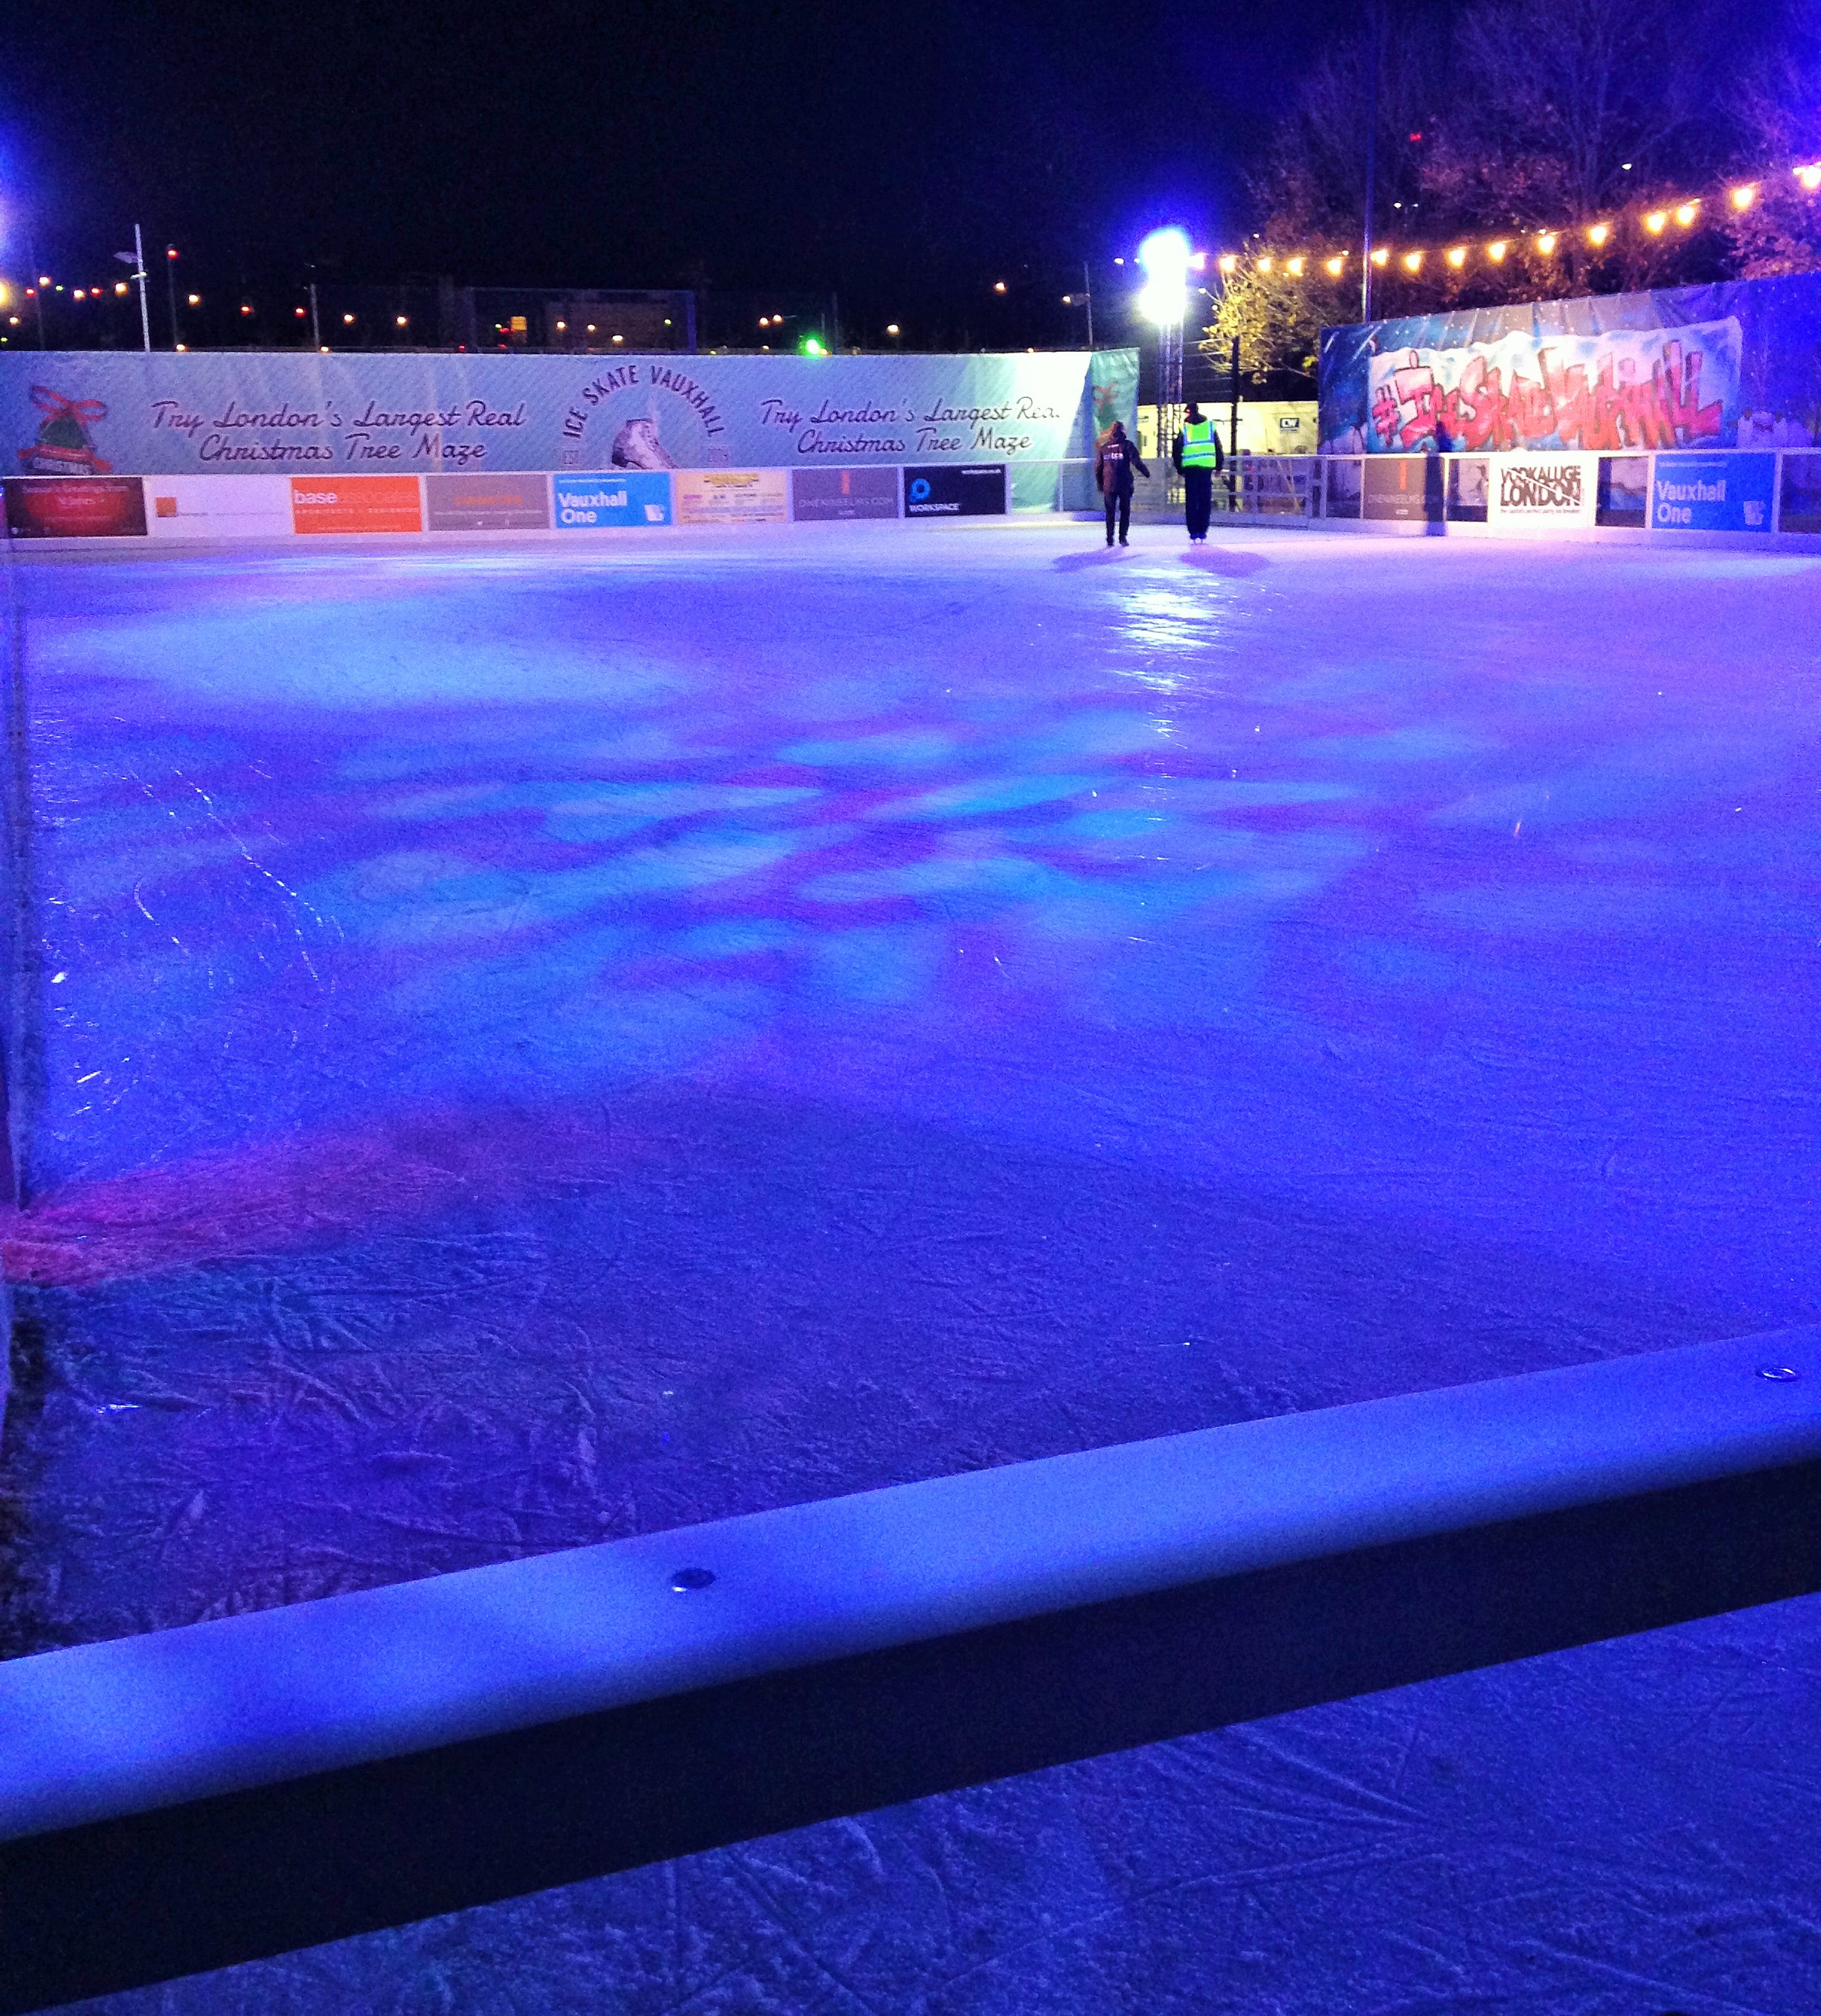 The Ice Rink, Ice Skate Vauxhall - kenningtonrunoff.com